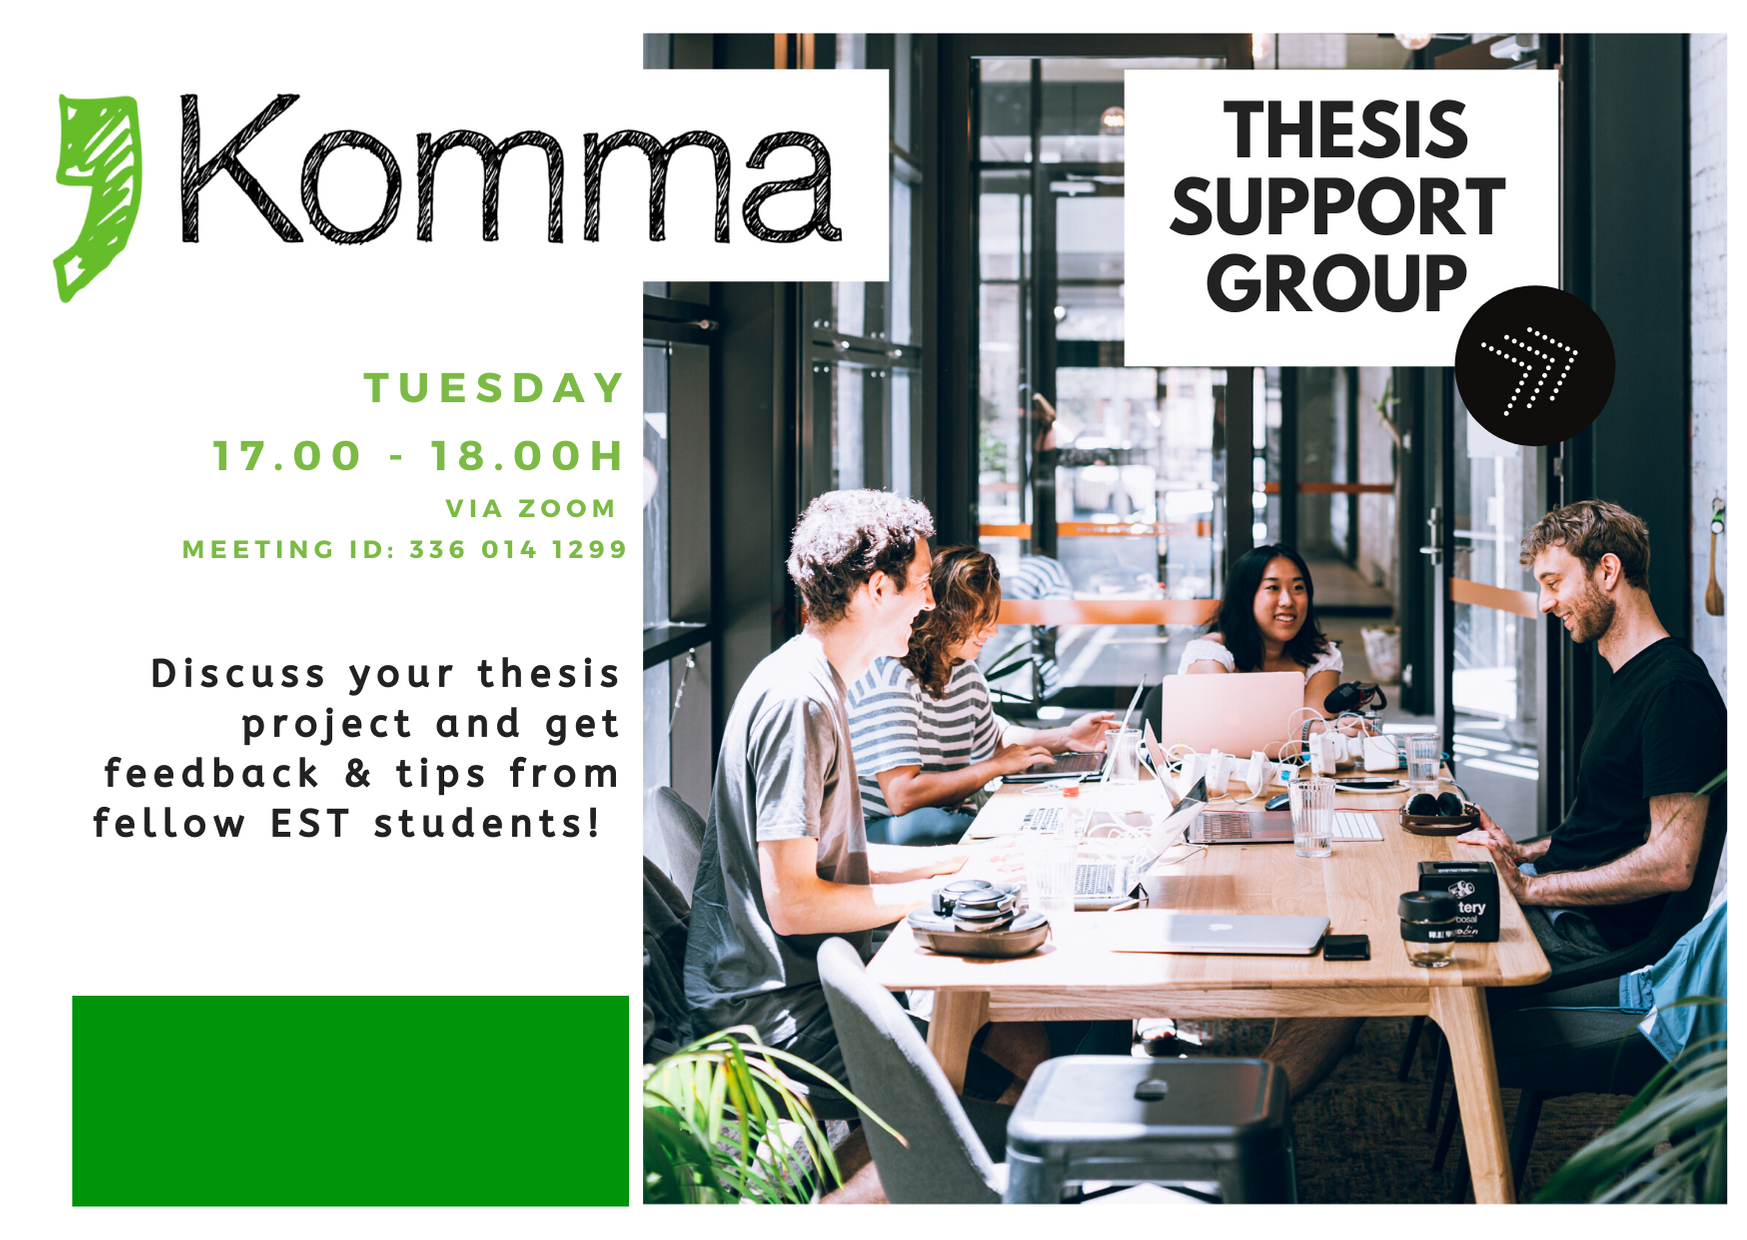 Thesis Support Group